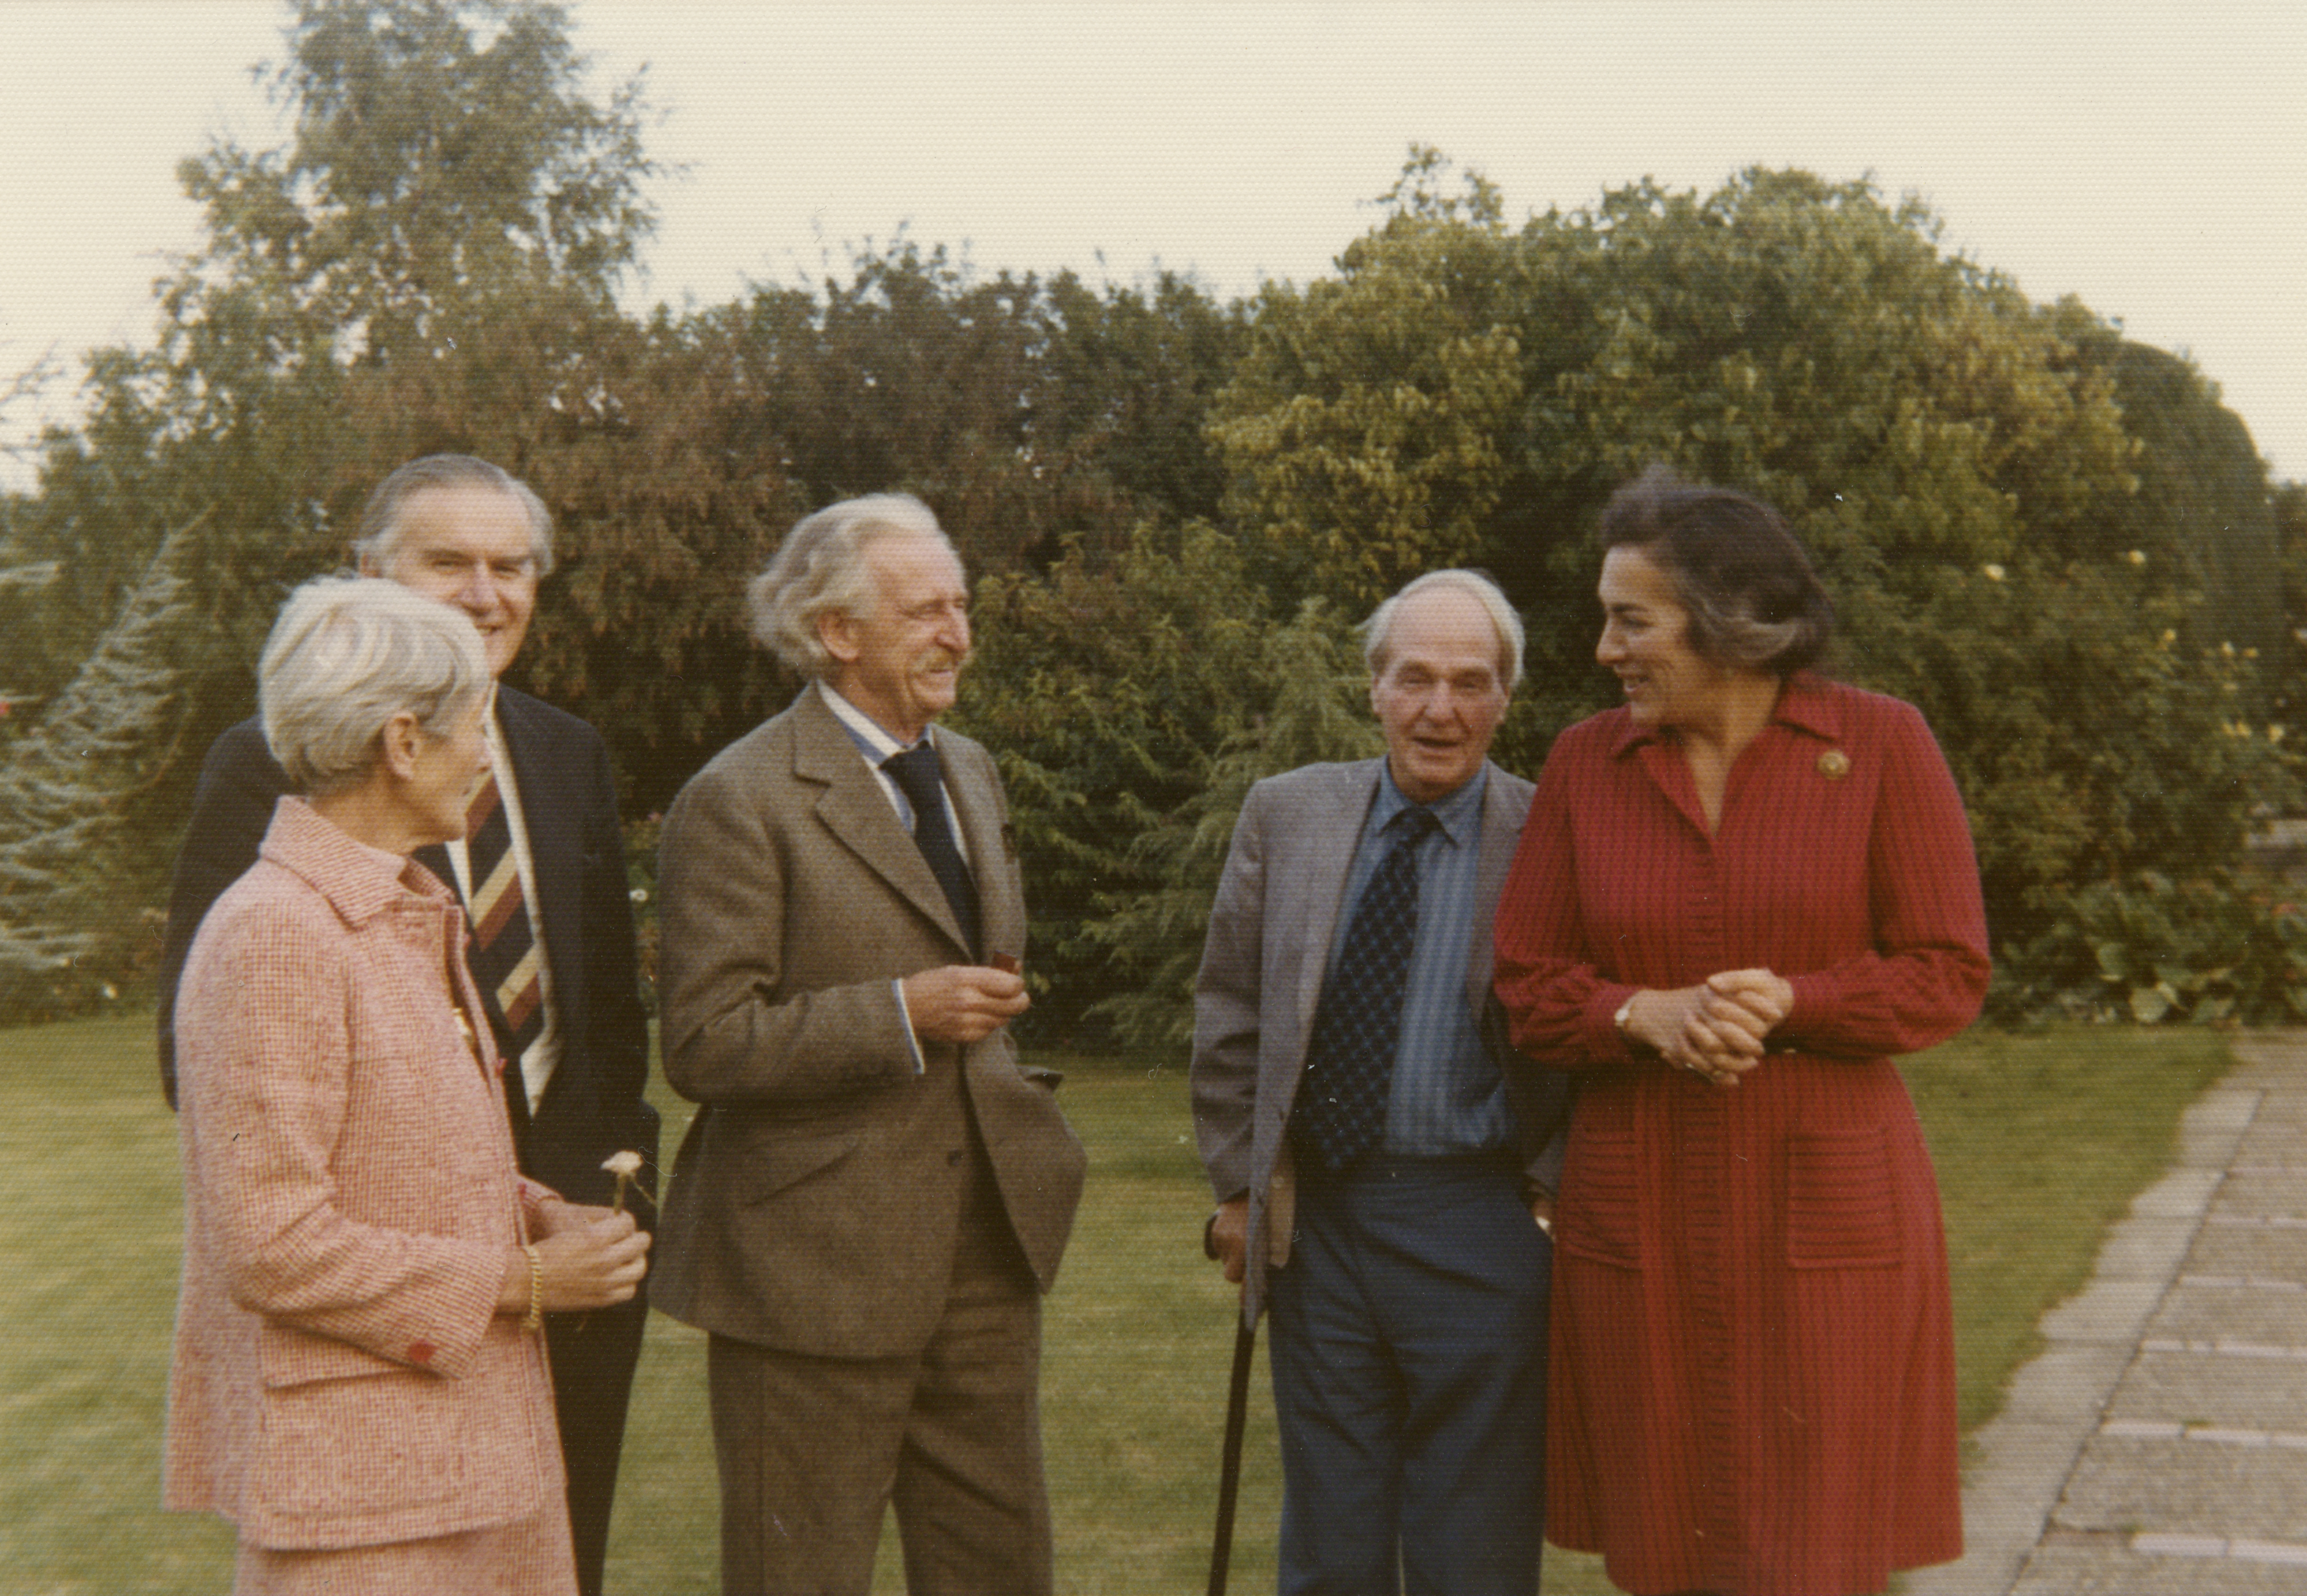 Irina Moore, Rae Finnet, Sir Frederick Gibberd, Henry Moore, and Lady Patricia Gibberd, 1974